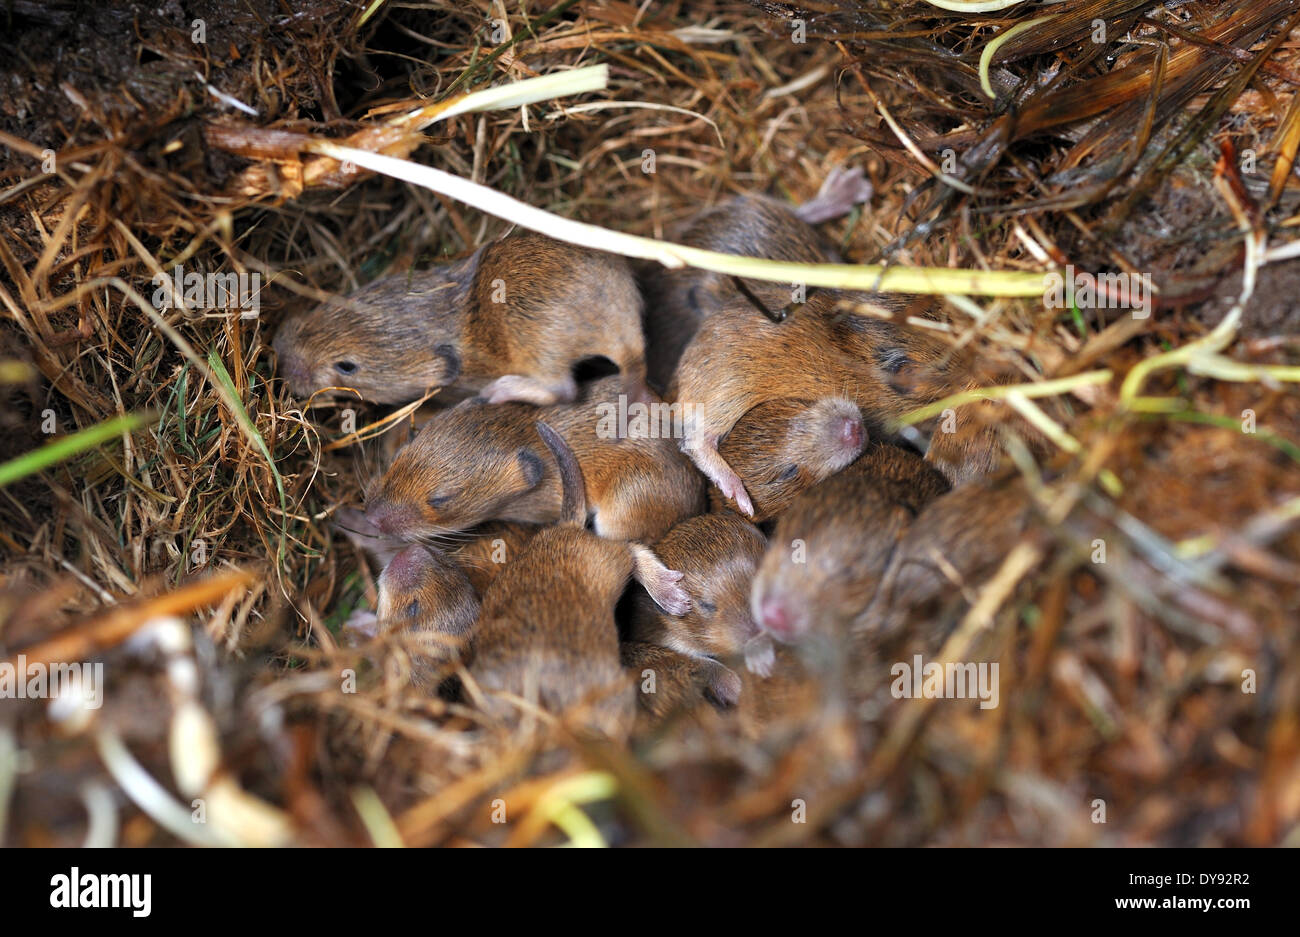 house mouse rodent mice mus musculus little mouse rodent gray mouse fur animal food eat young nest animal animals Germany, - Stock Image